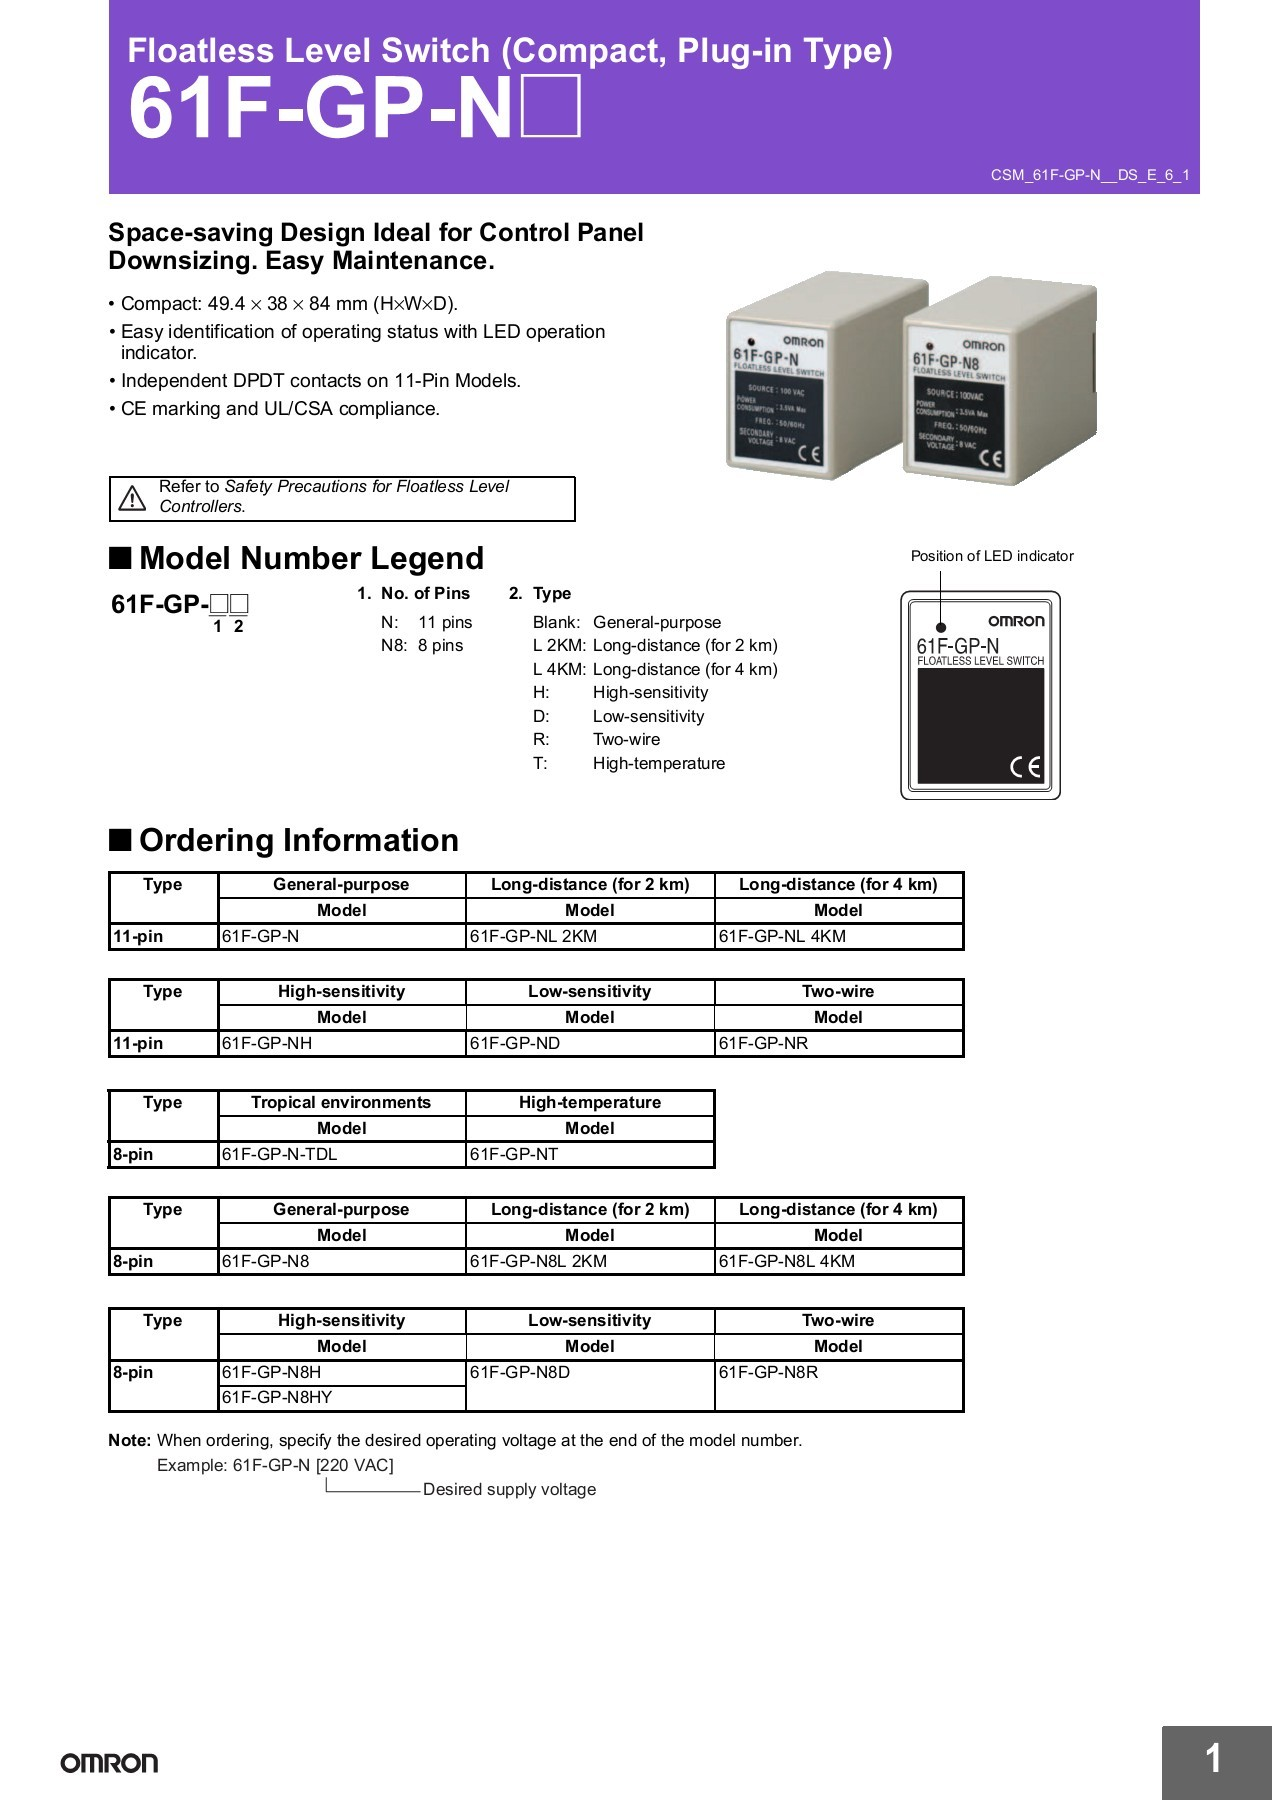 hight resolution of floatless level switch compact plug in type 61f gp n pages 1 15 text version fliphtml5